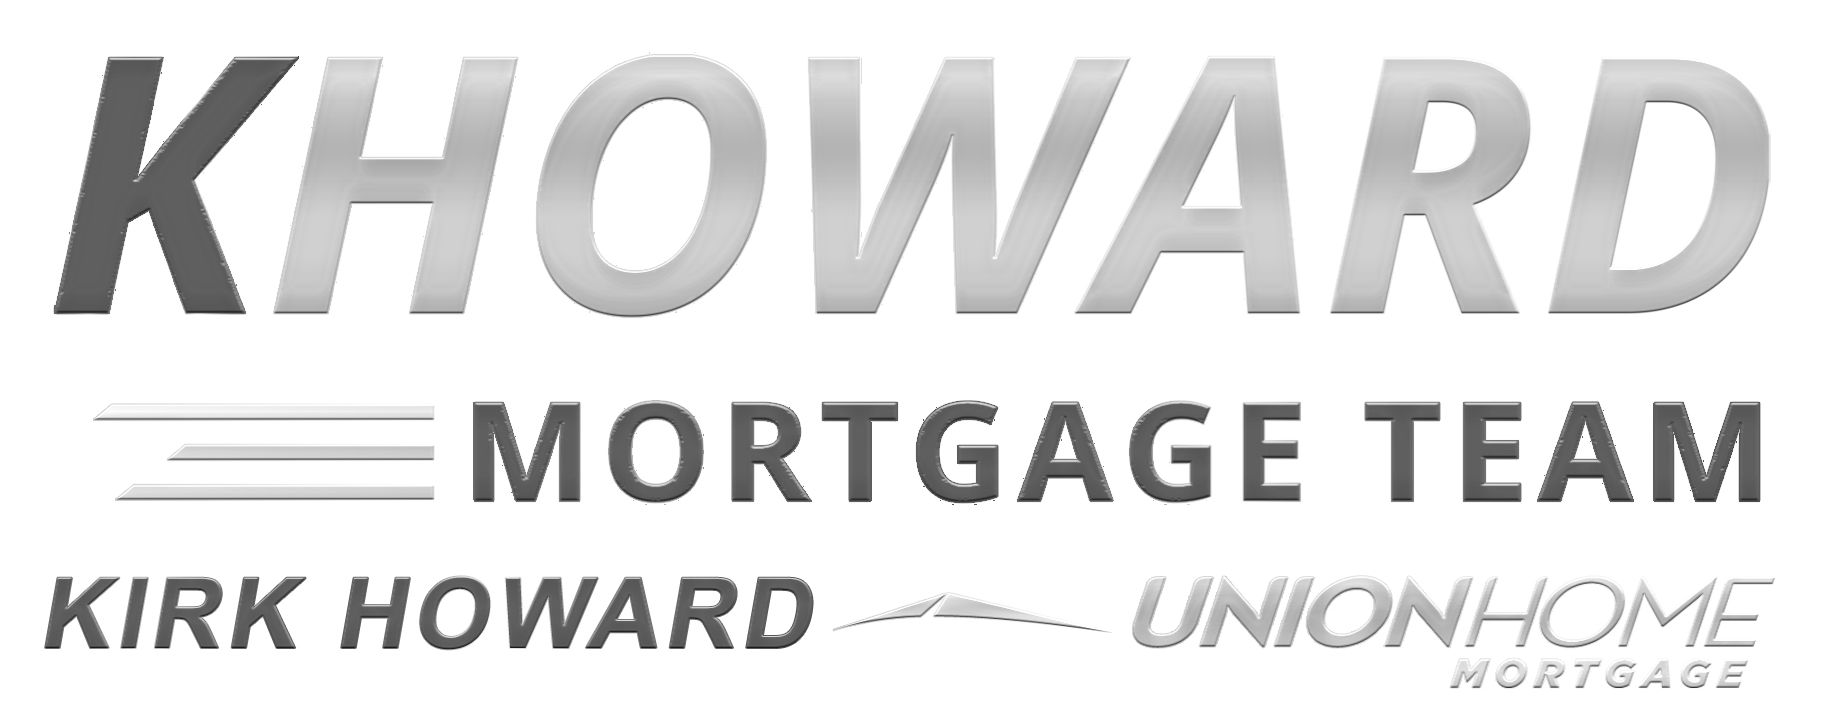 KHoward Mortgage Team/Union Logo